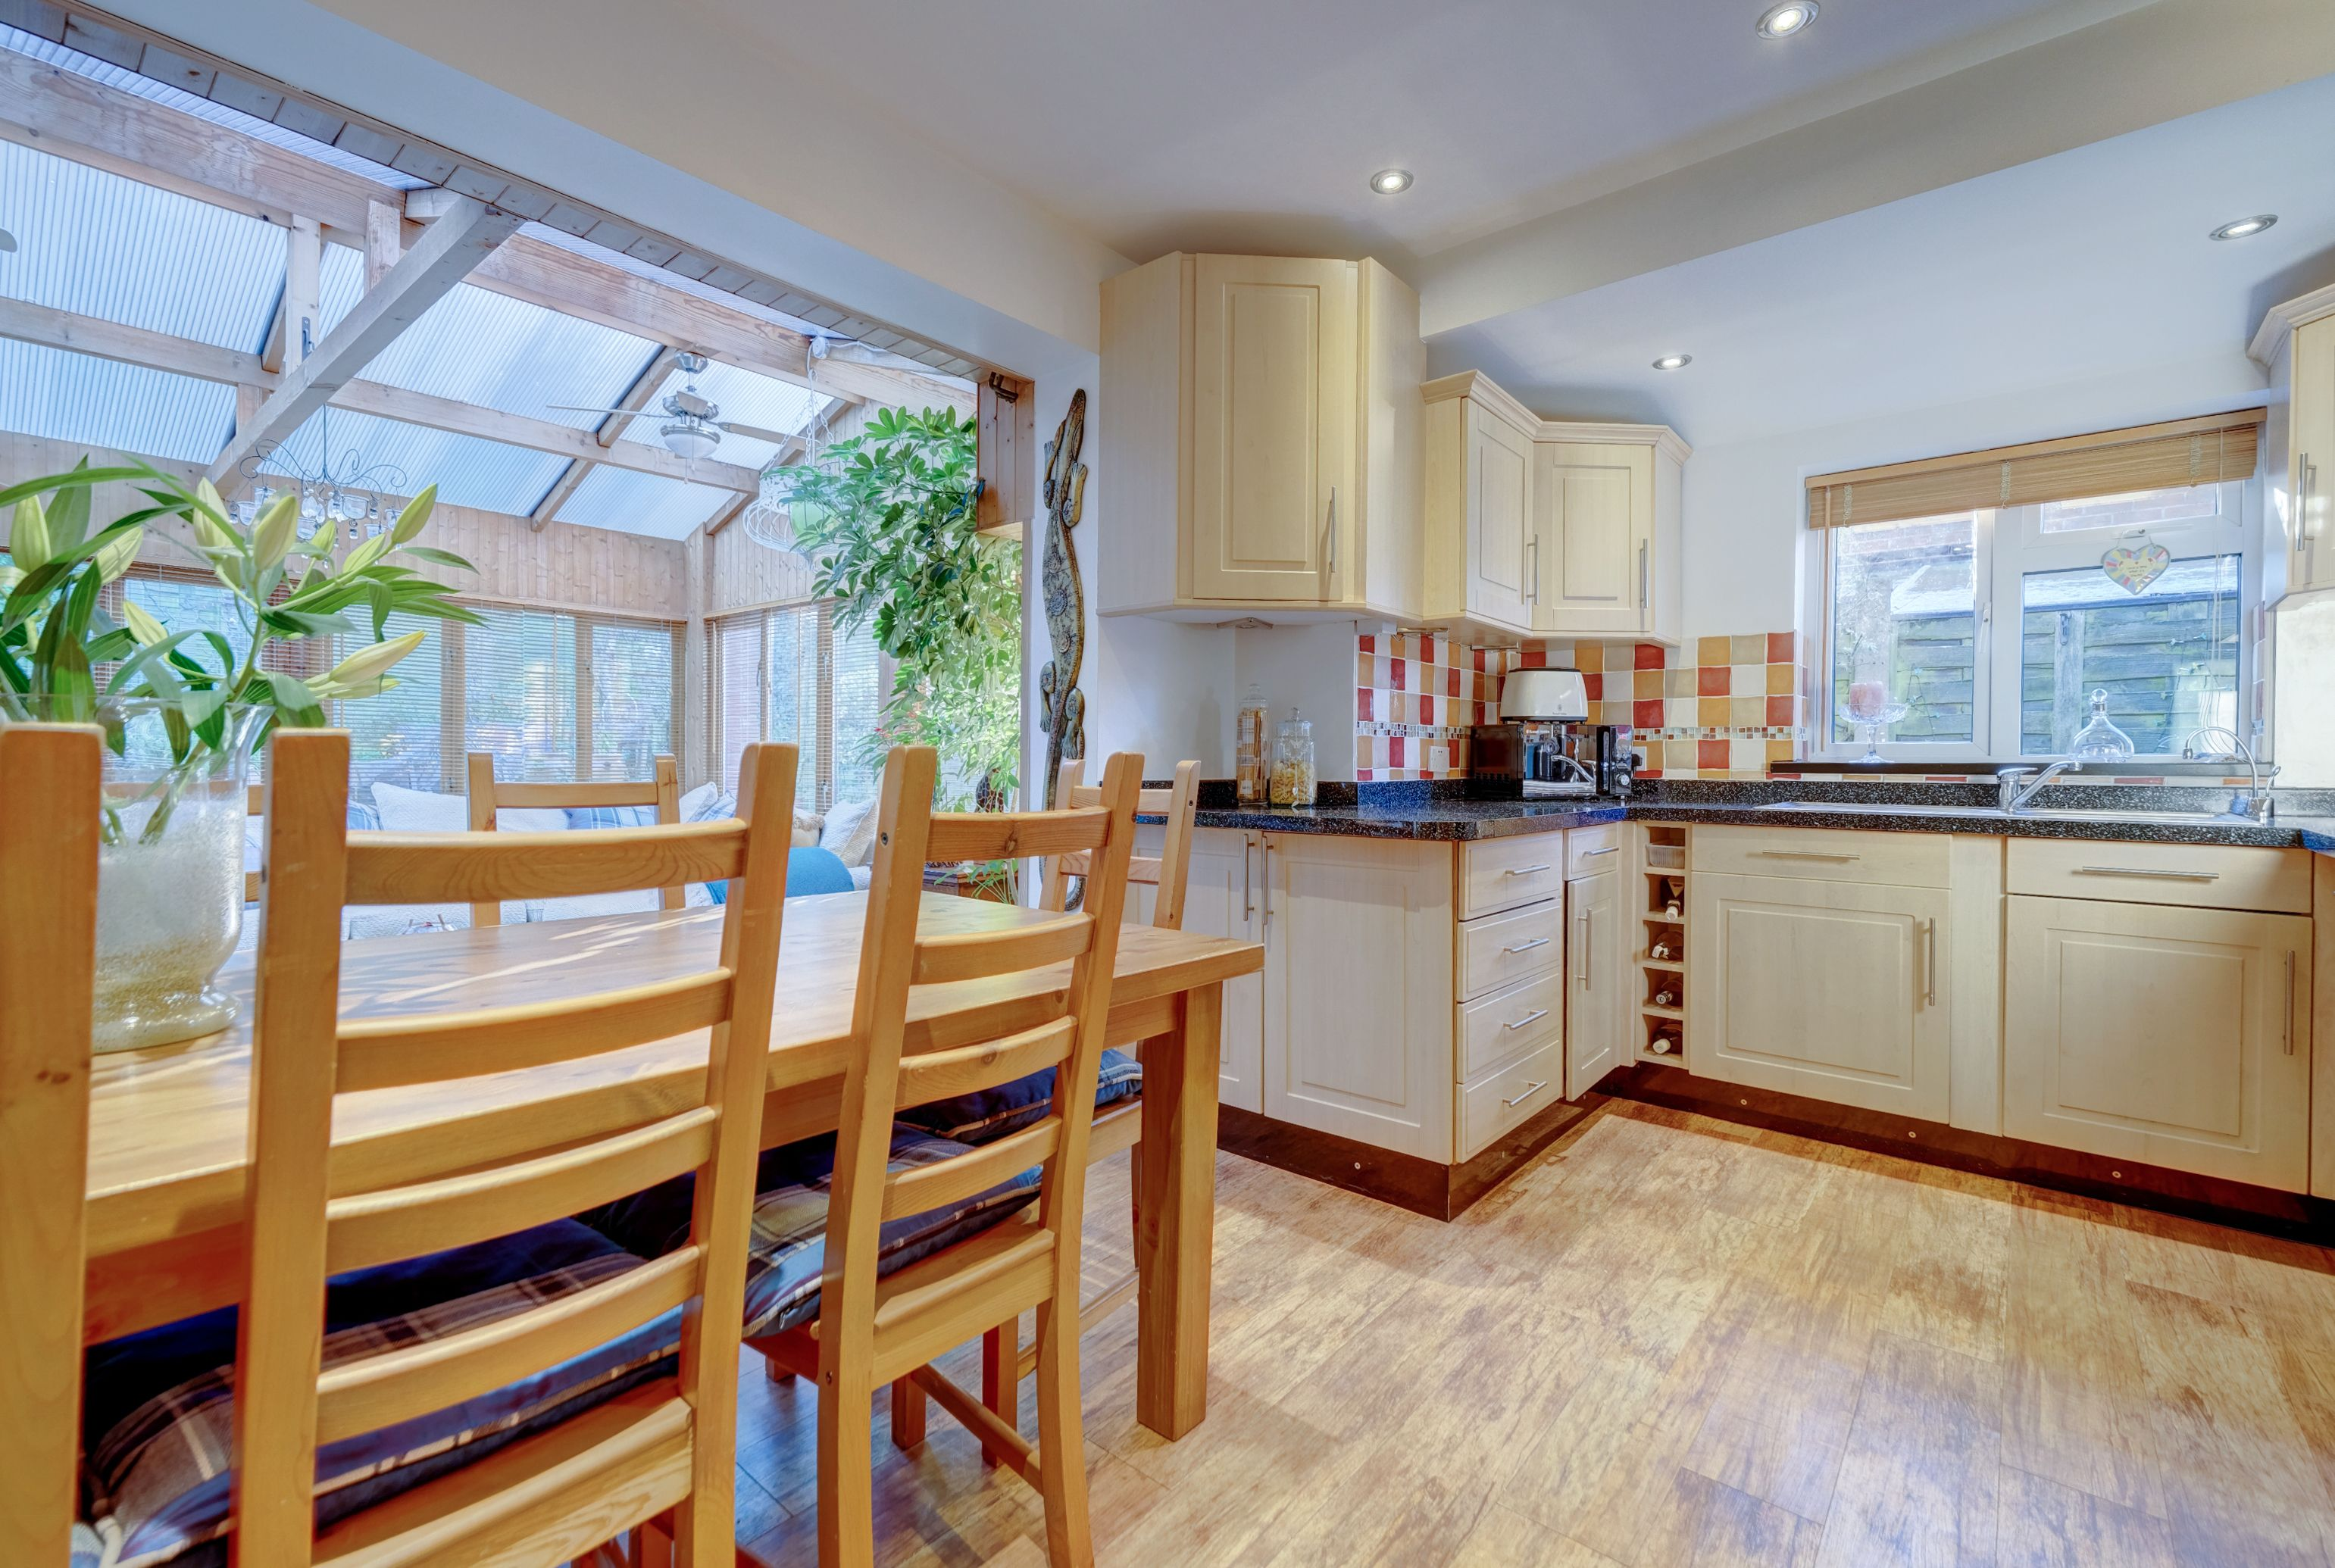 4 bed detached house for sale in Stanley Road, Hinckley, LE10, Hinckley  - Property Image 1